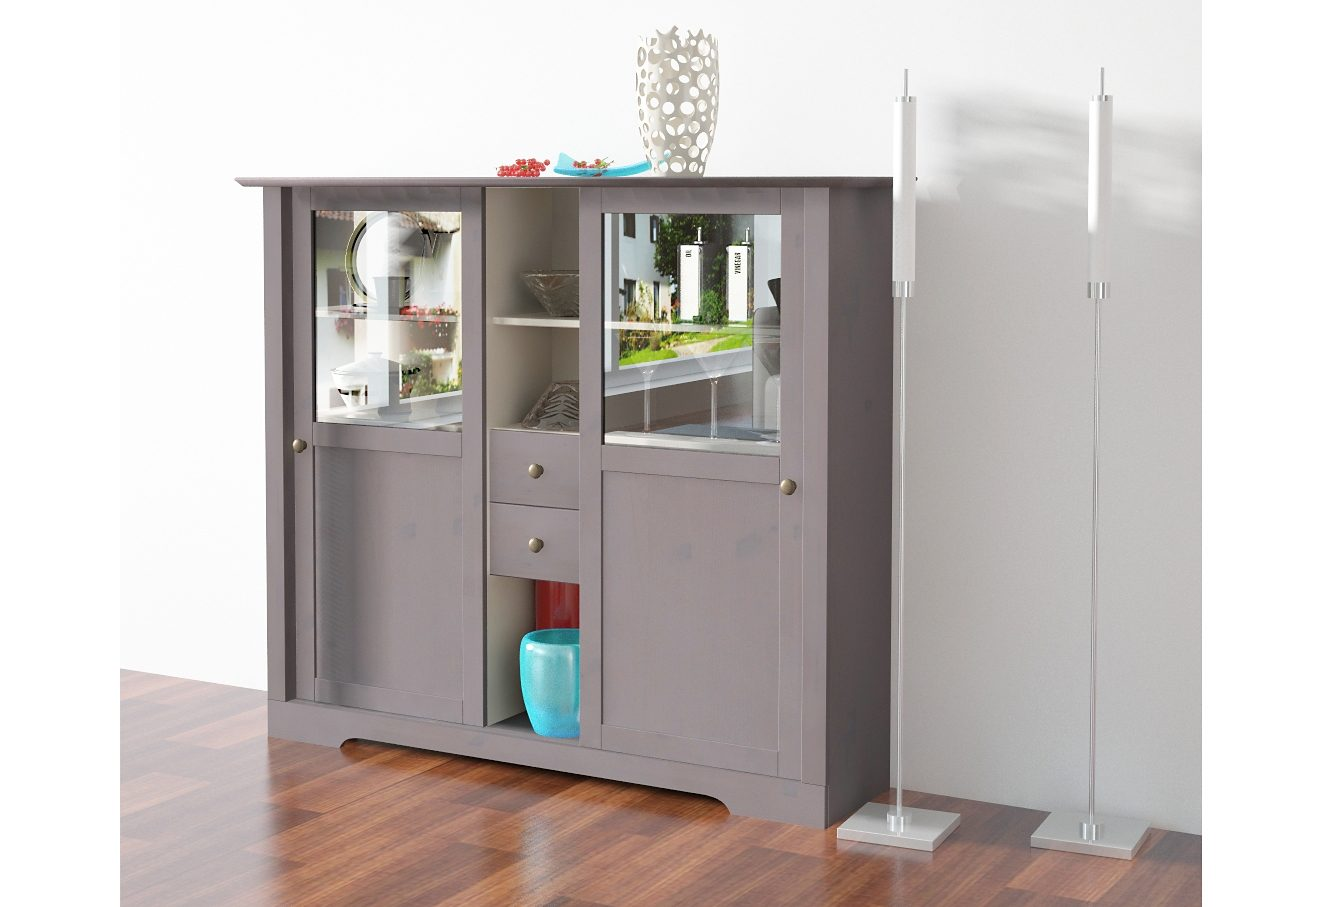 Highboard, Home affaire, Breite 140 cm, Höhe 120 cm